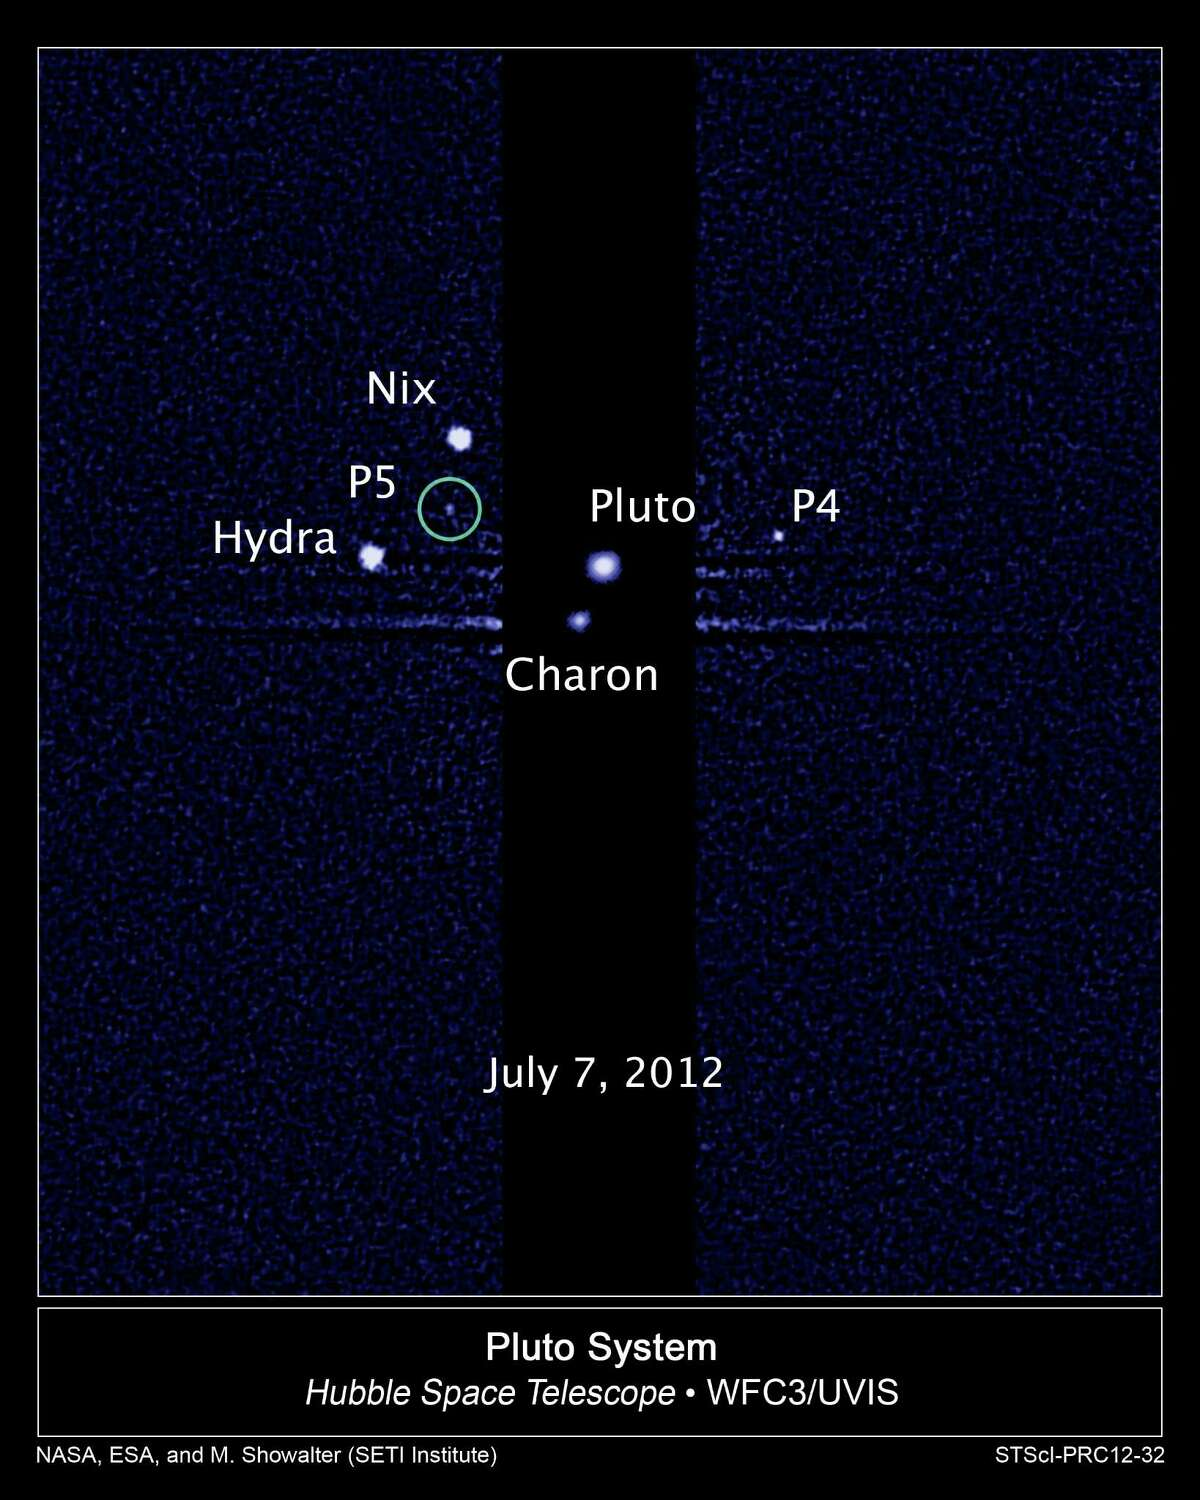 An image of Pluto and its moons.